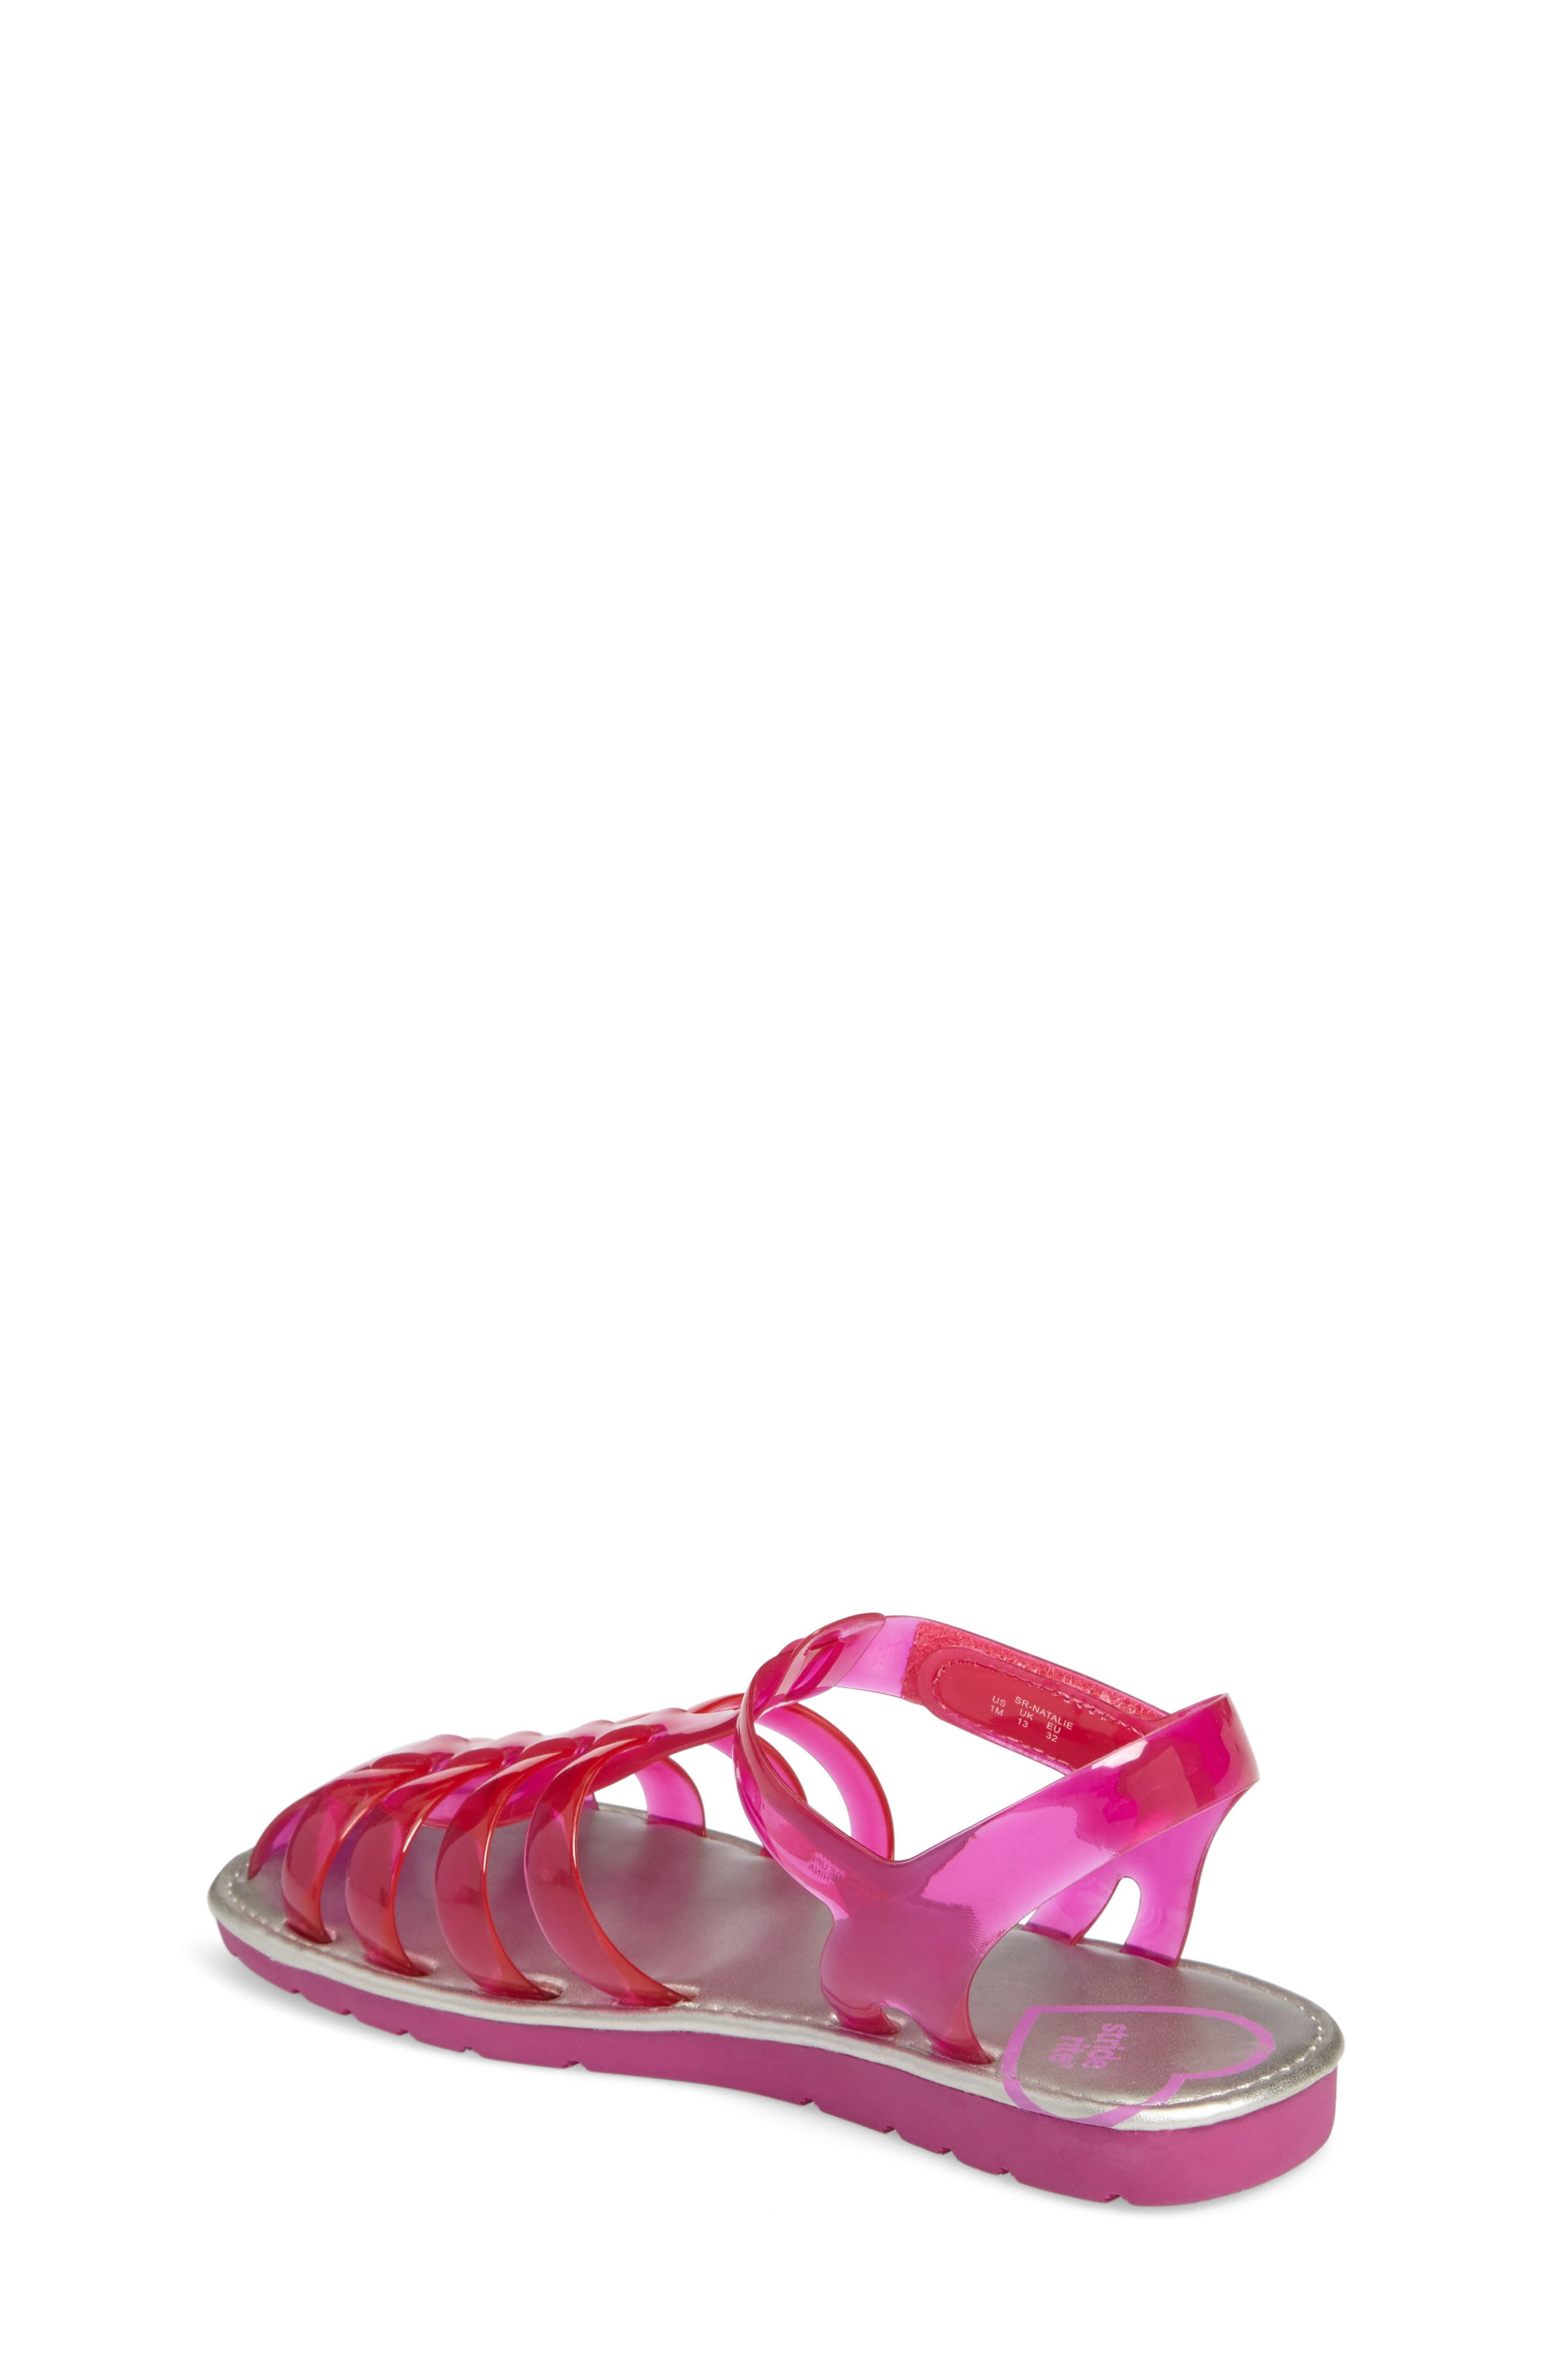 Natalie Jelly Sandal,                             Alternate thumbnail 2, color,                             Magenta